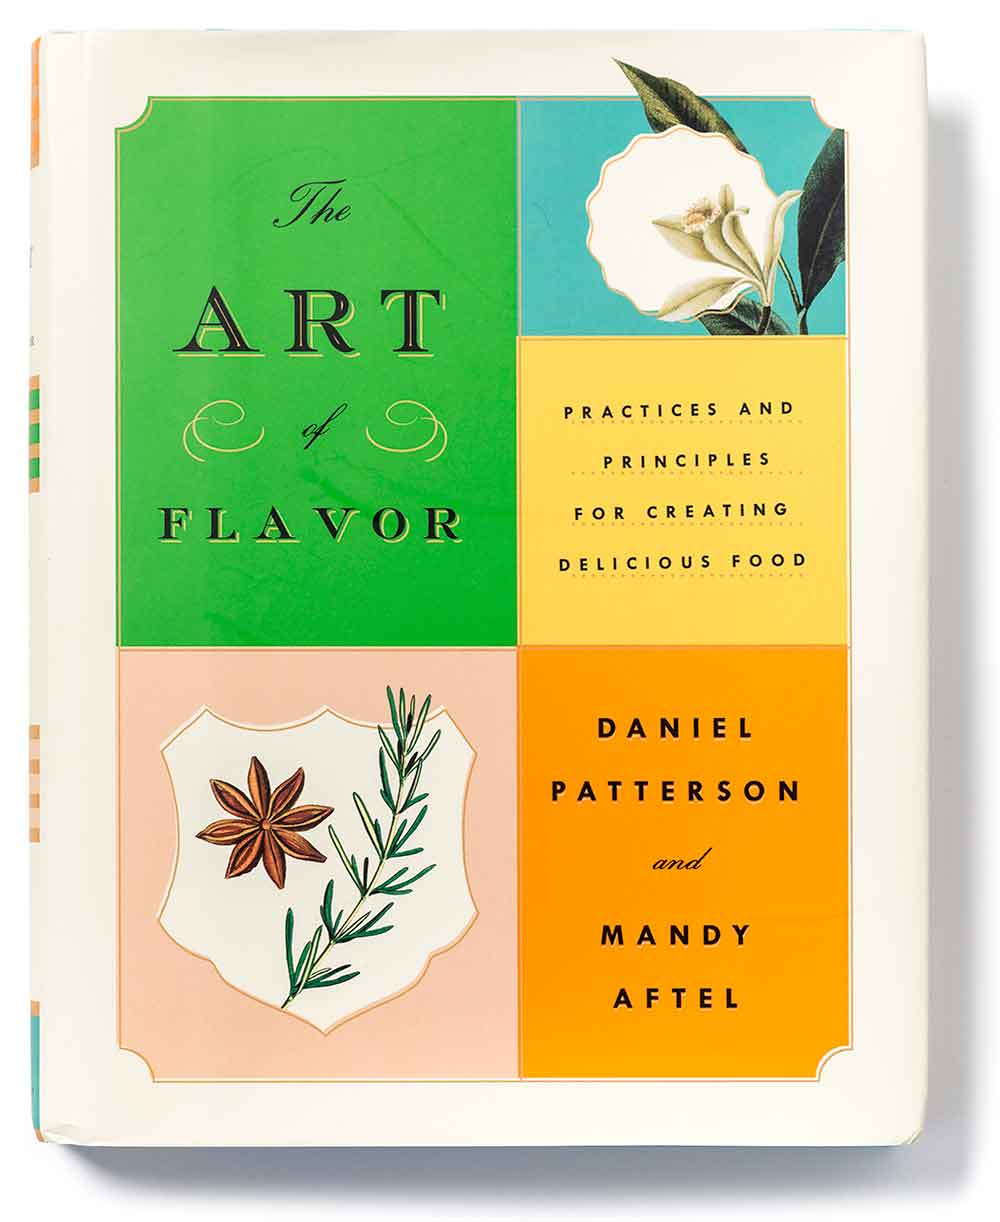 The Art of Flavor: Practices and Principles for Creating Delicious Food – Daniel Patterson, Mandy Aftel